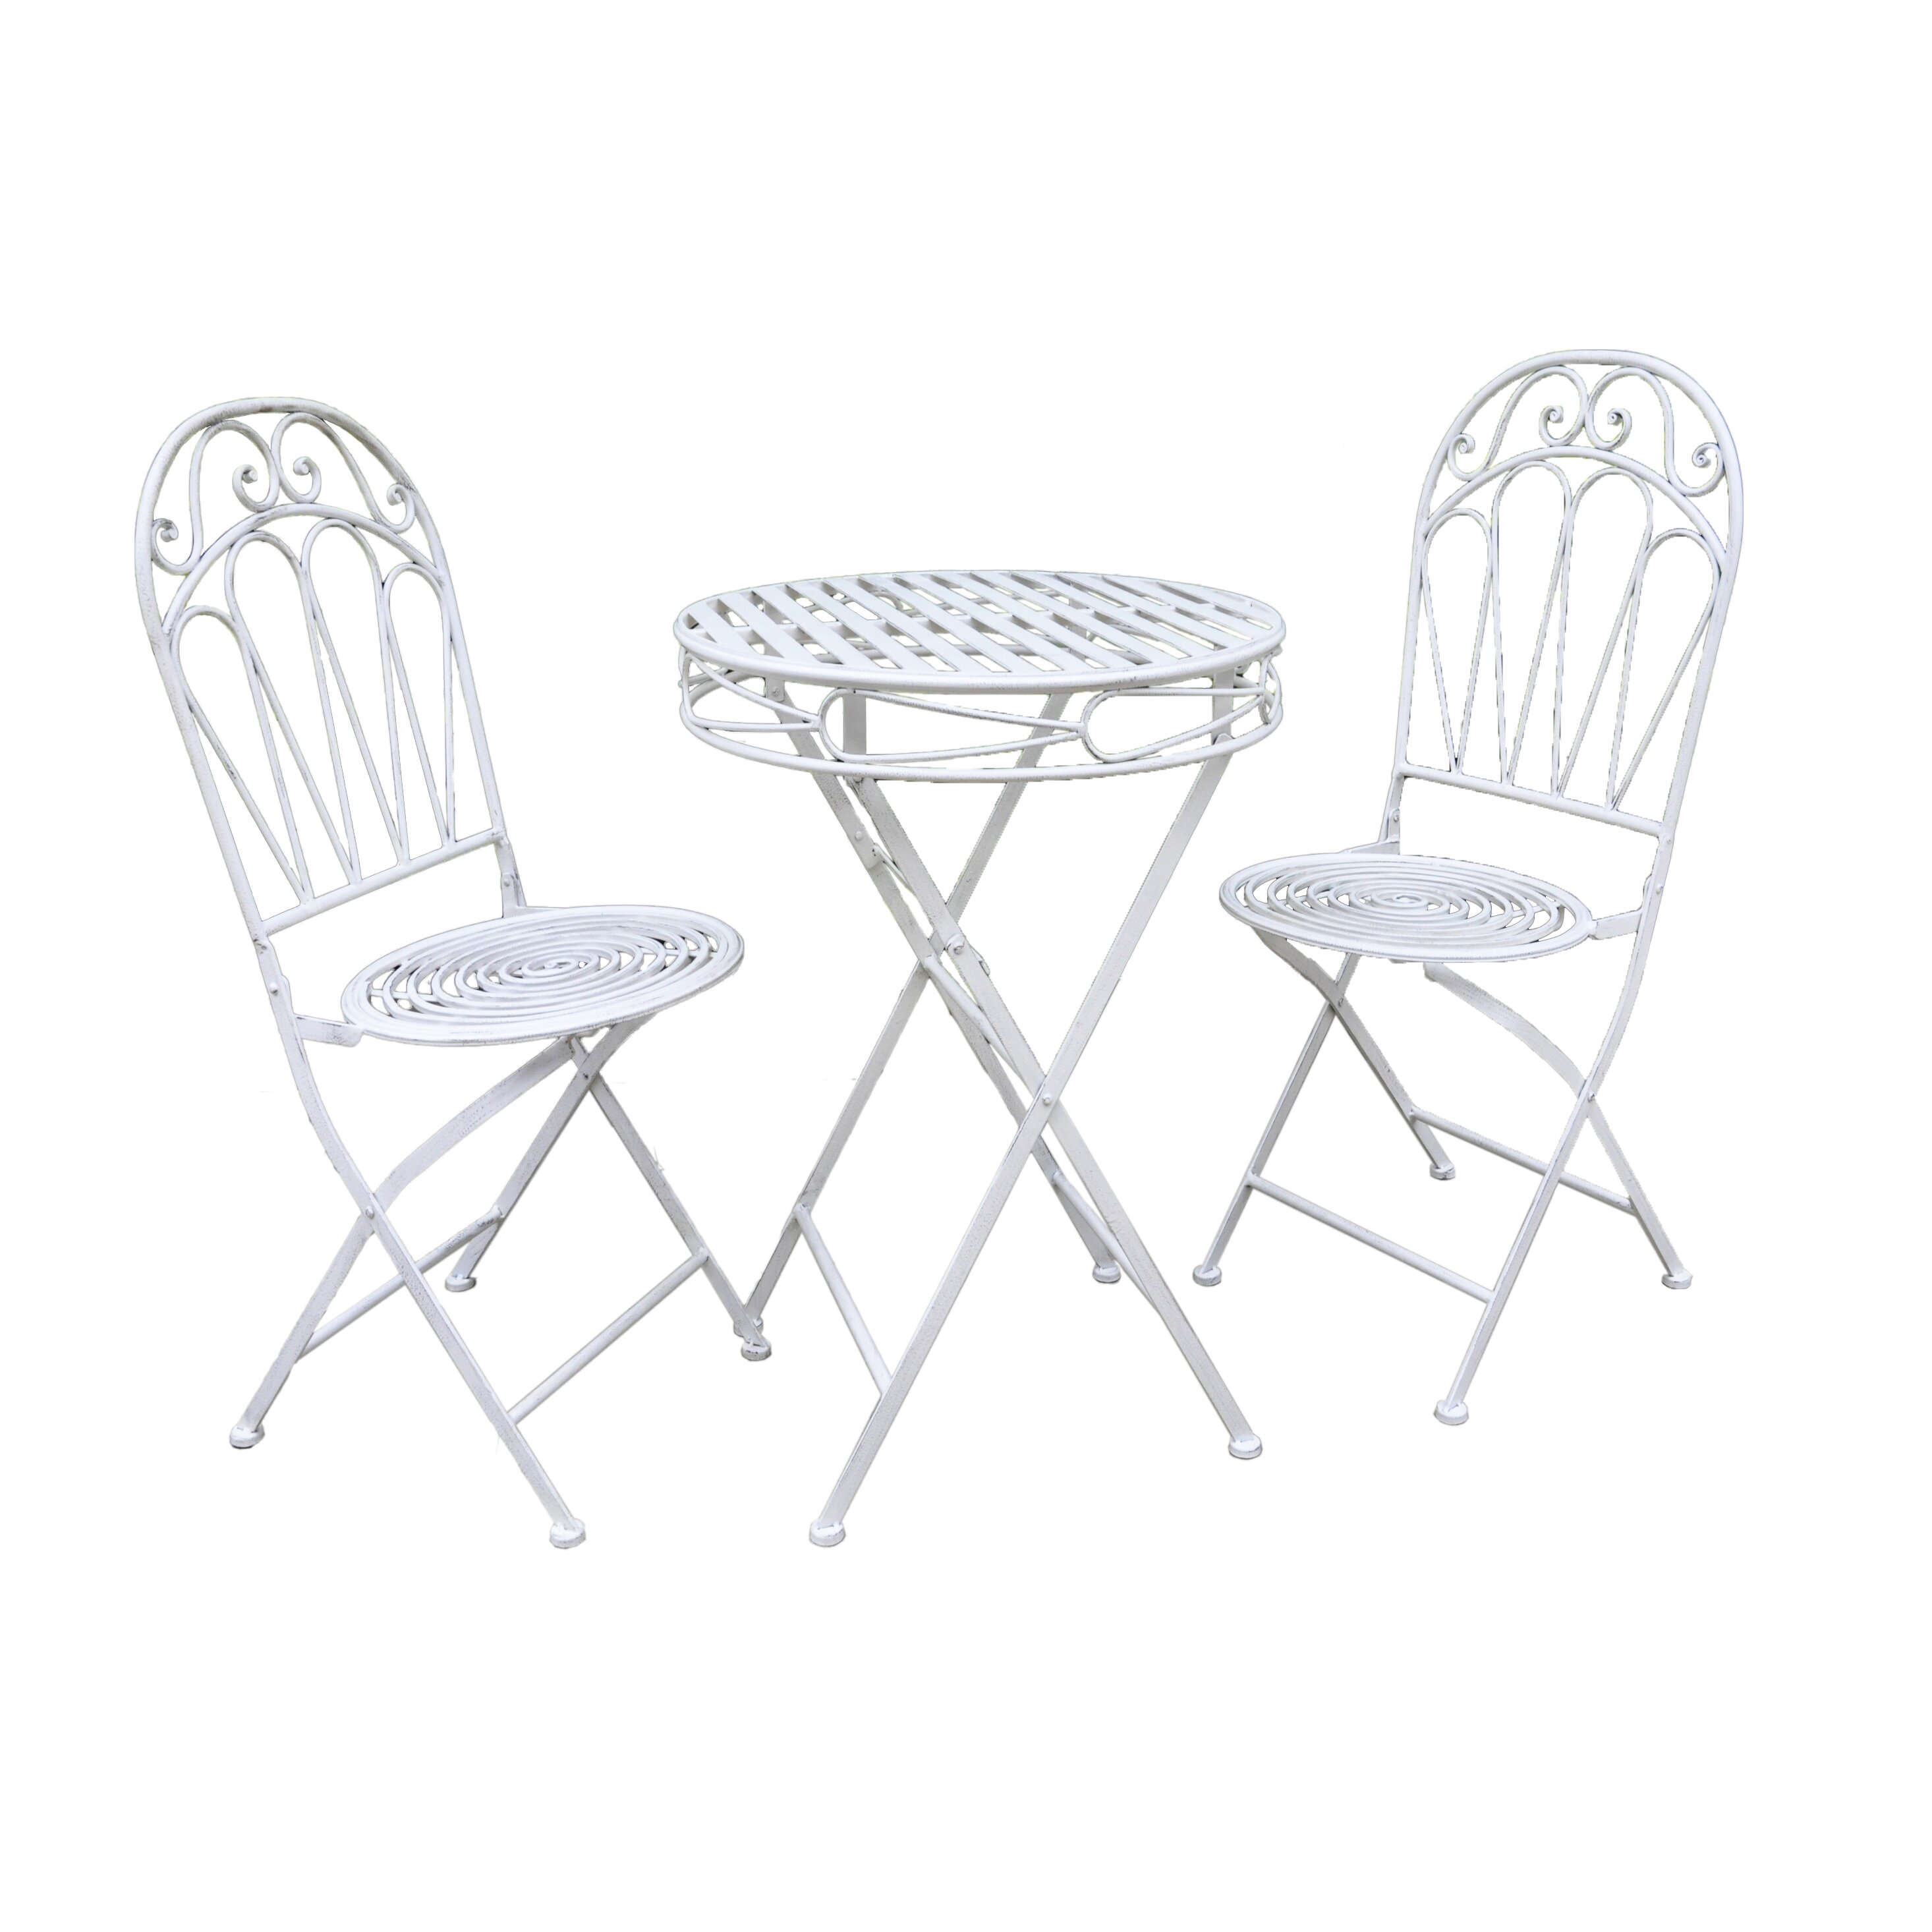 Prepossessing Garden Dining Sets  Wayfaircouk With Extraordinary Romance  Seater Bistro Set With Lovely Garden Machinery Spares Also Easy Garden Design In Addition Alton Garden Centre And Weather Wilderness Garden Route As Well As Garden Hose Sump Pump Additionally Zip Code For Winter Garden Fl From Wayfaircouk With   Extraordinary Garden Dining Sets  Wayfaircouk With Lovely Romance  Seater Bistro Set And Prepossessing Garden Machinery Spares Also Easy Garden Design In Addition Alton Garden Centre From Wayfaircouk